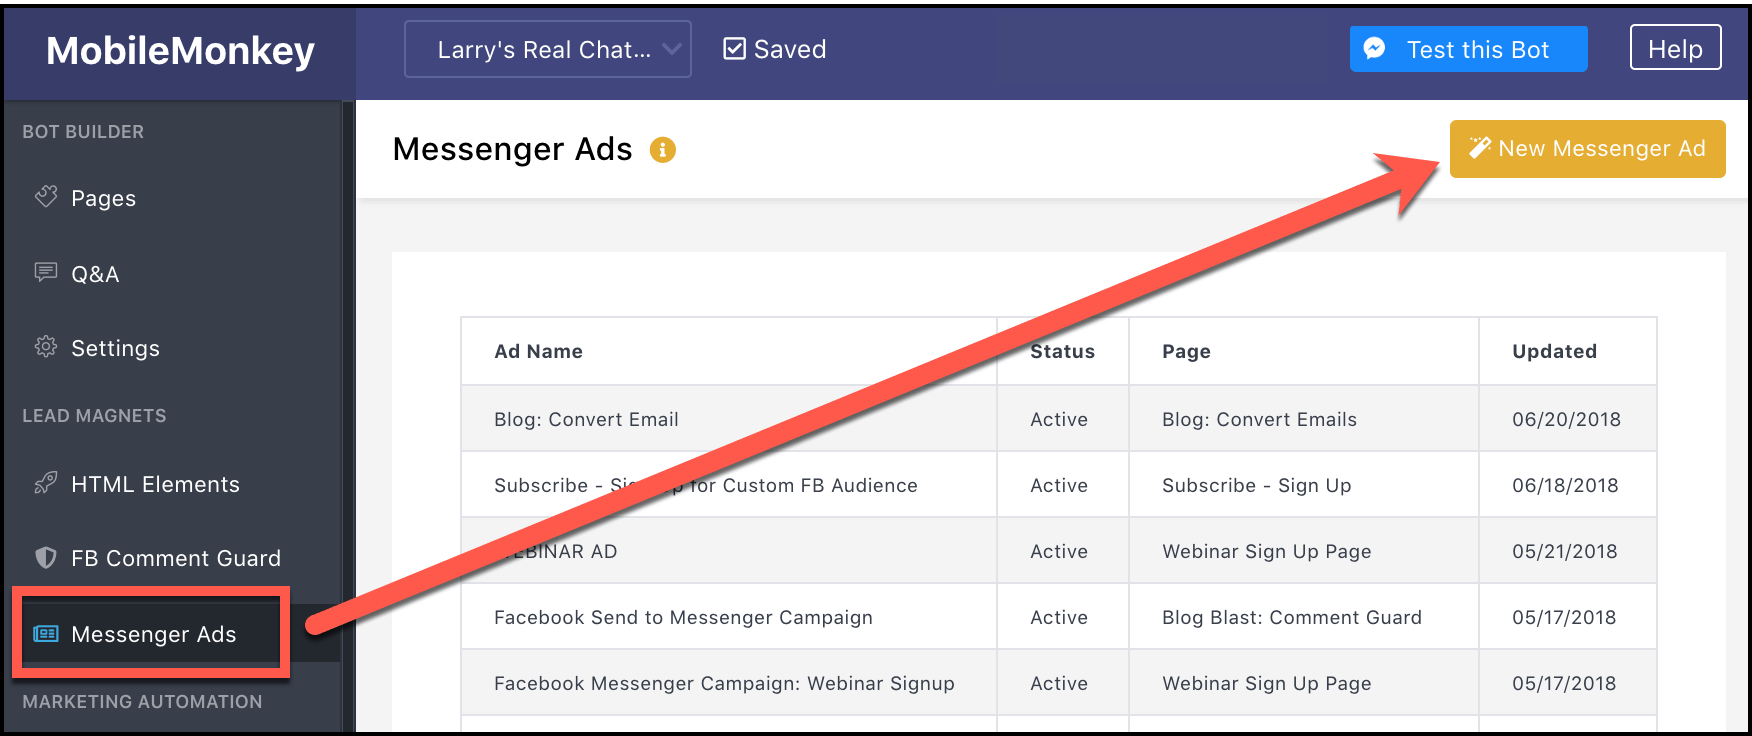 Messenger Ads for Blog Posts - create new messenger ad